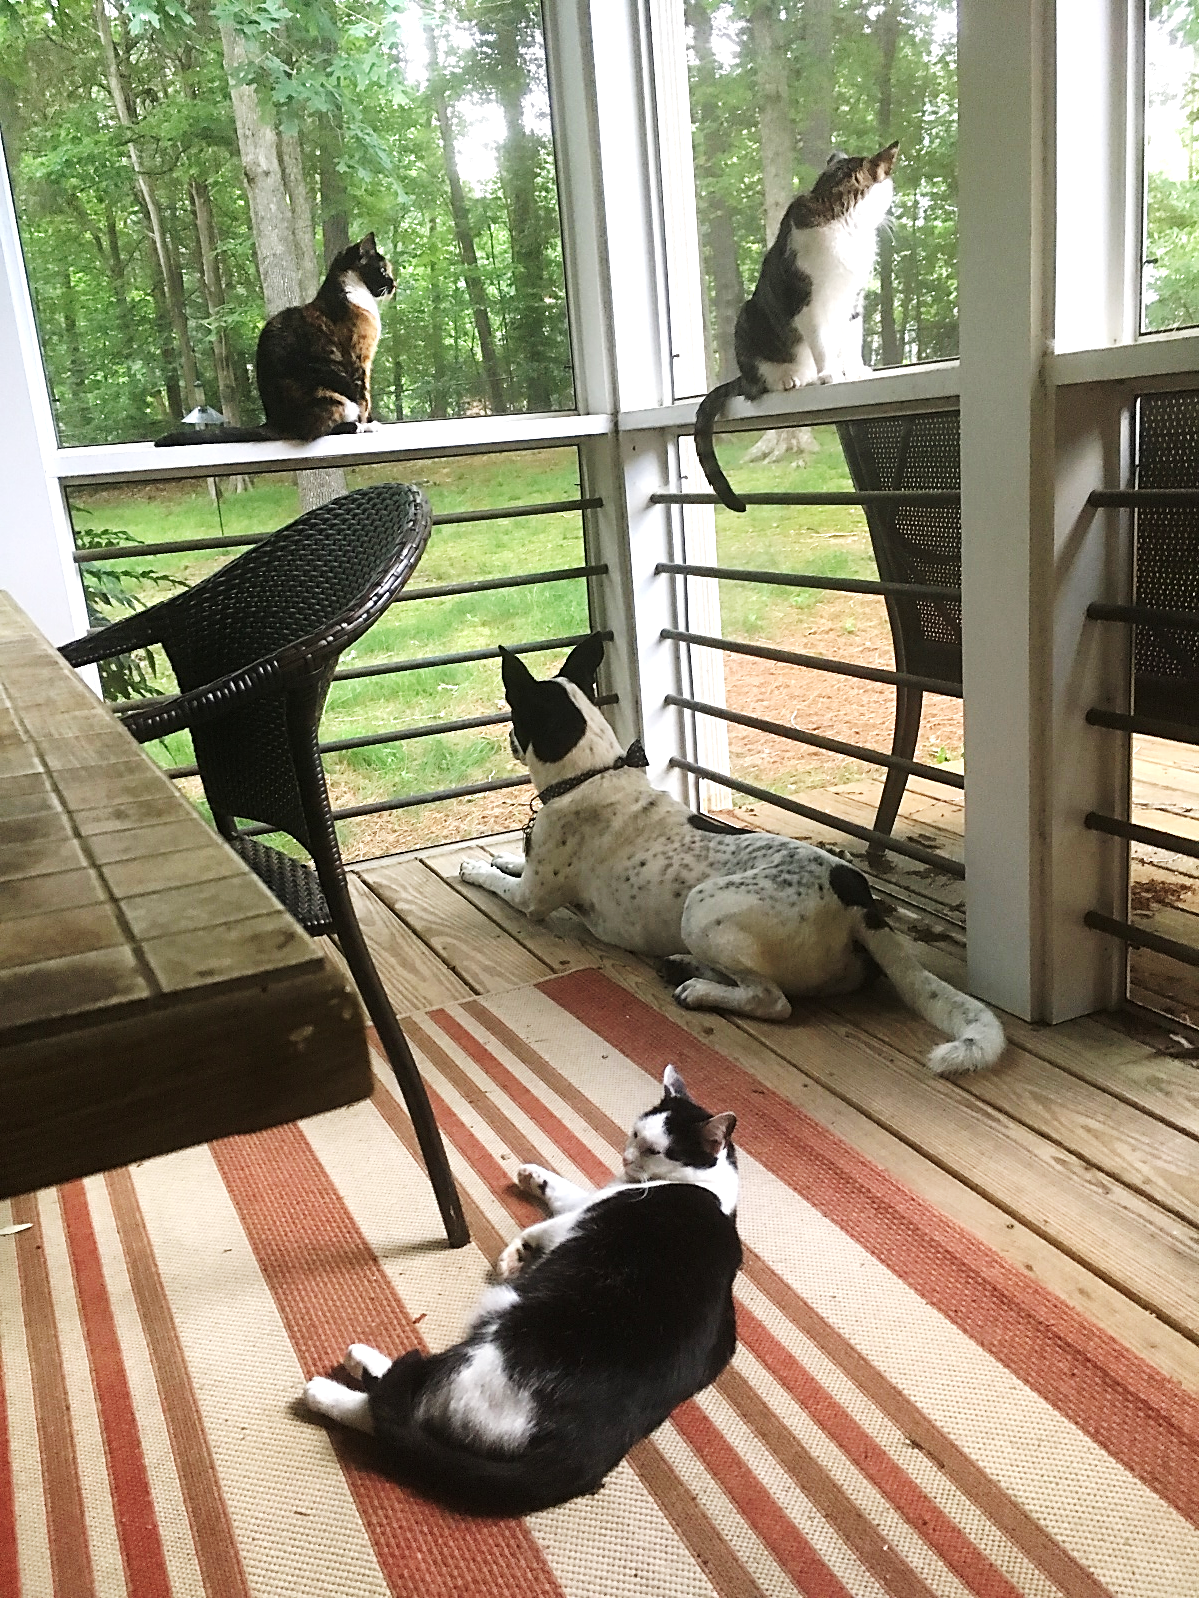 My four cats, Lyanna, Mulder, Scully, and Ozzie